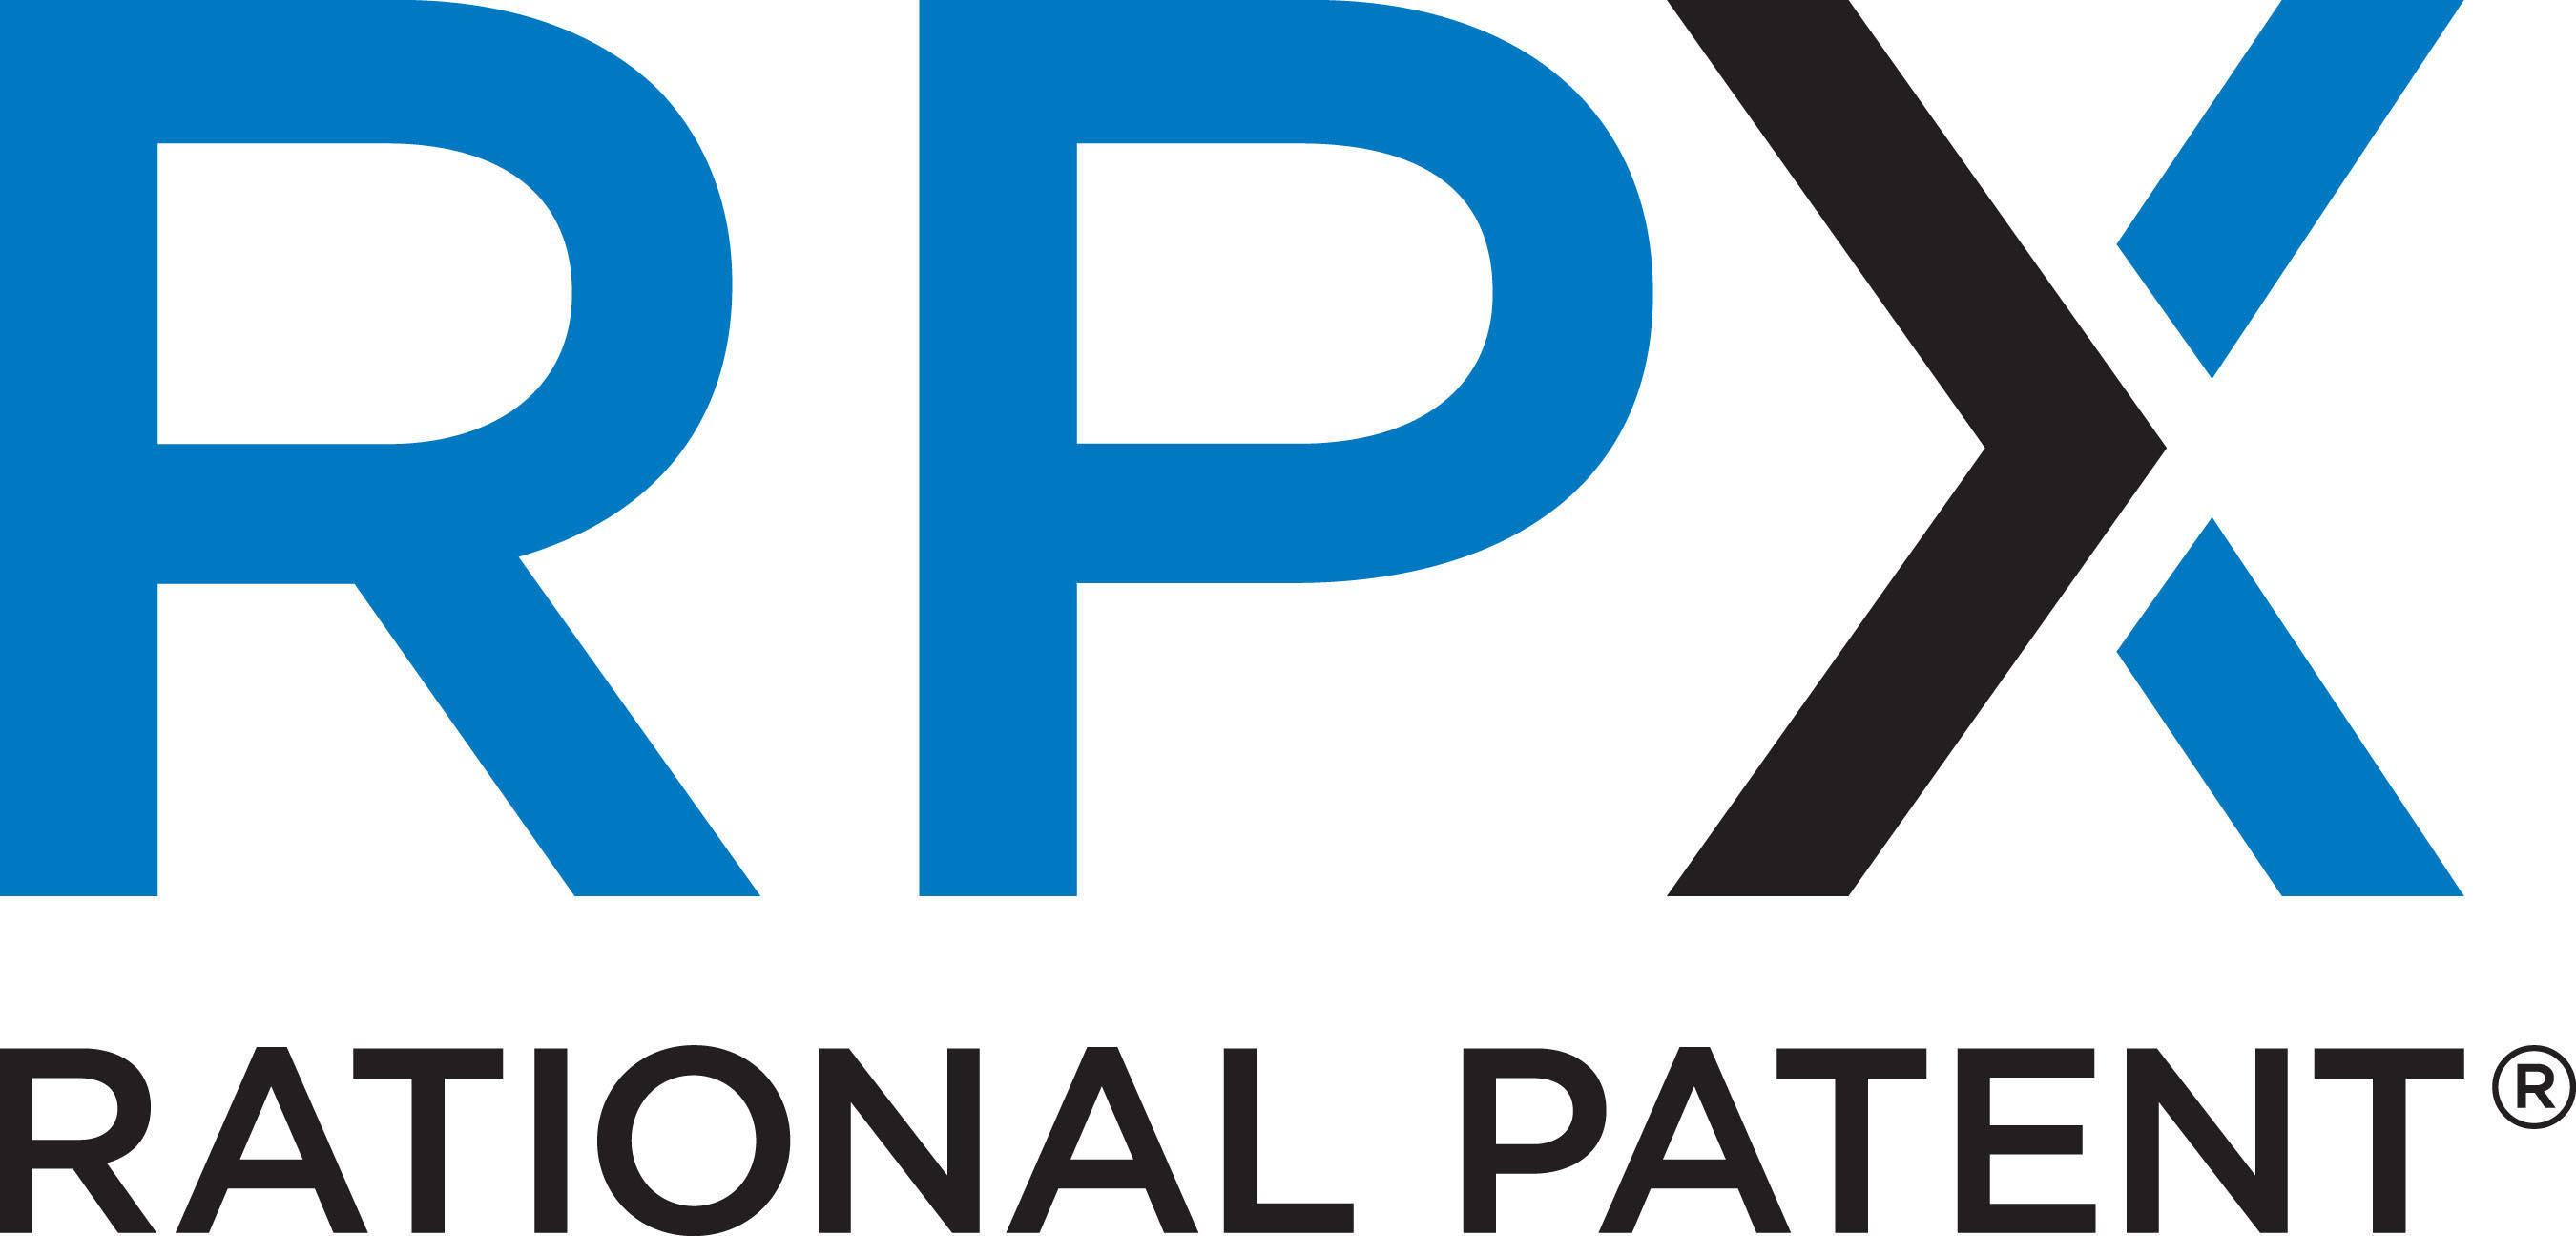 RPX Announces Fourth Quarter and Fiscal 2015 Financial Results